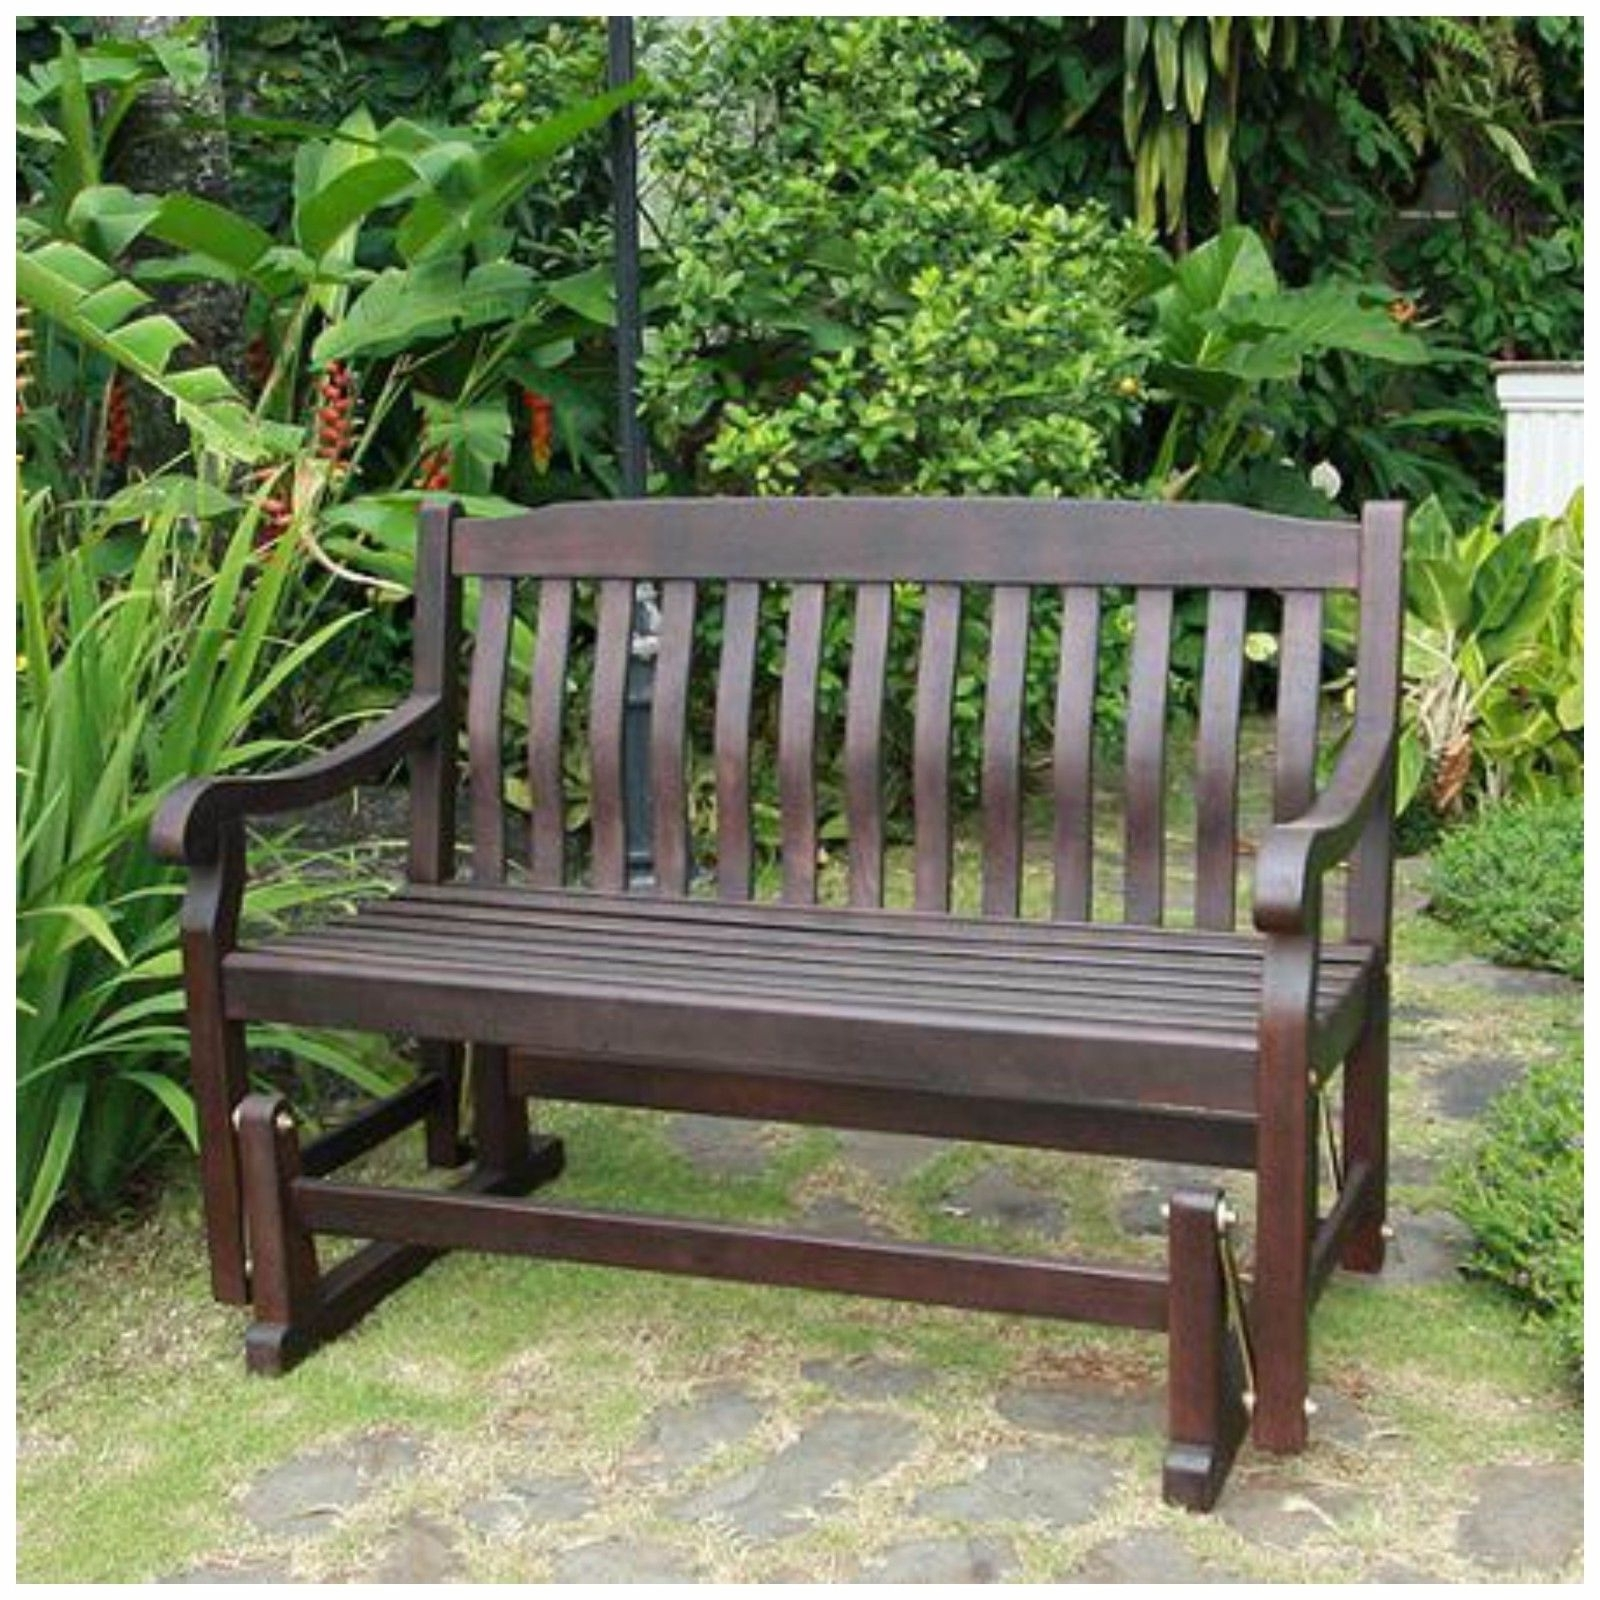 Patio Furniture Rocking Benches Pertaining To 2017 Double Lawn Glider Swing Seatlatform Yard Chair Bench Treated Patio (View 10 of 15)